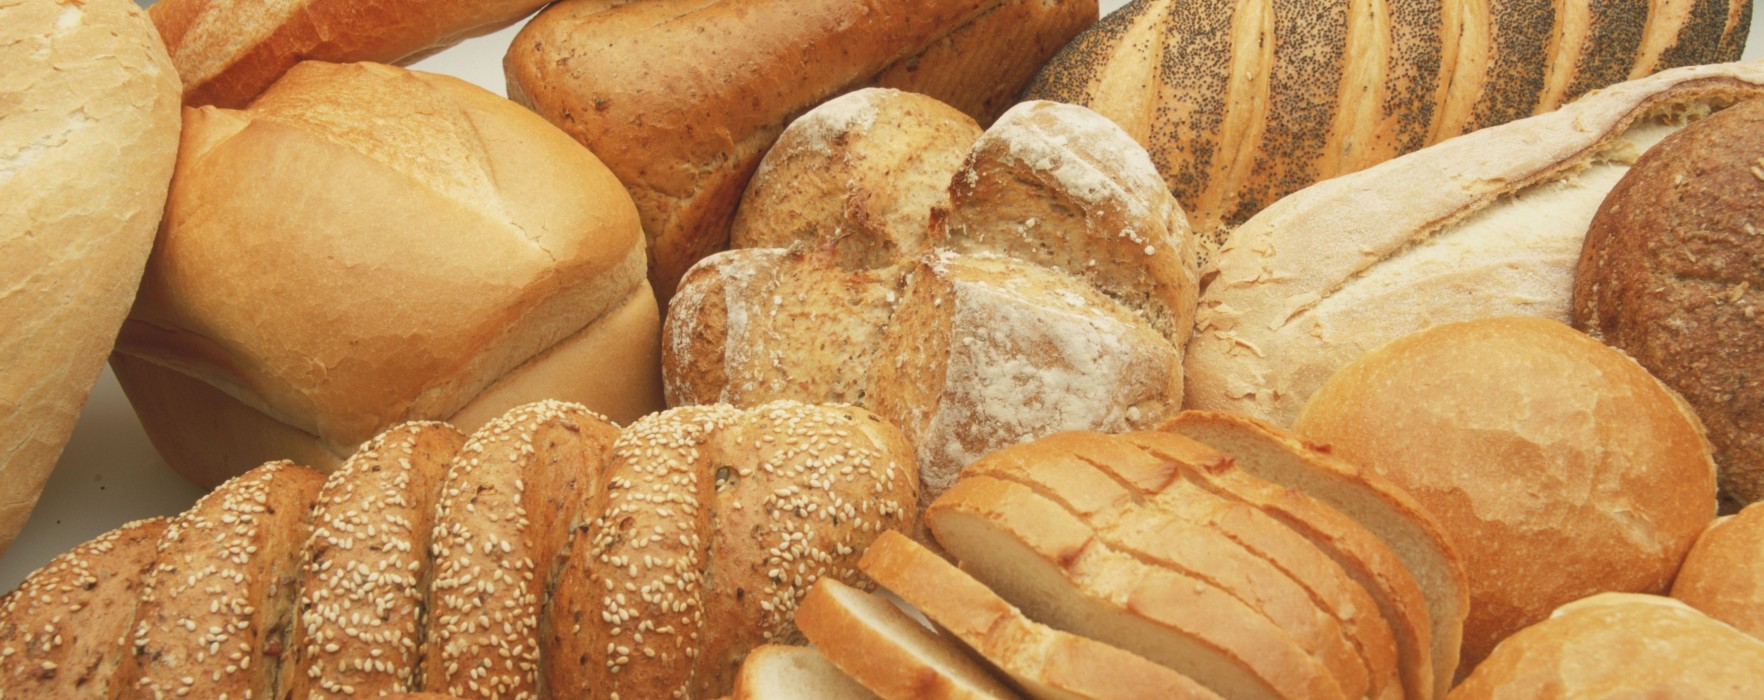 Is Nonceliac Gluten Sensitivity Real?